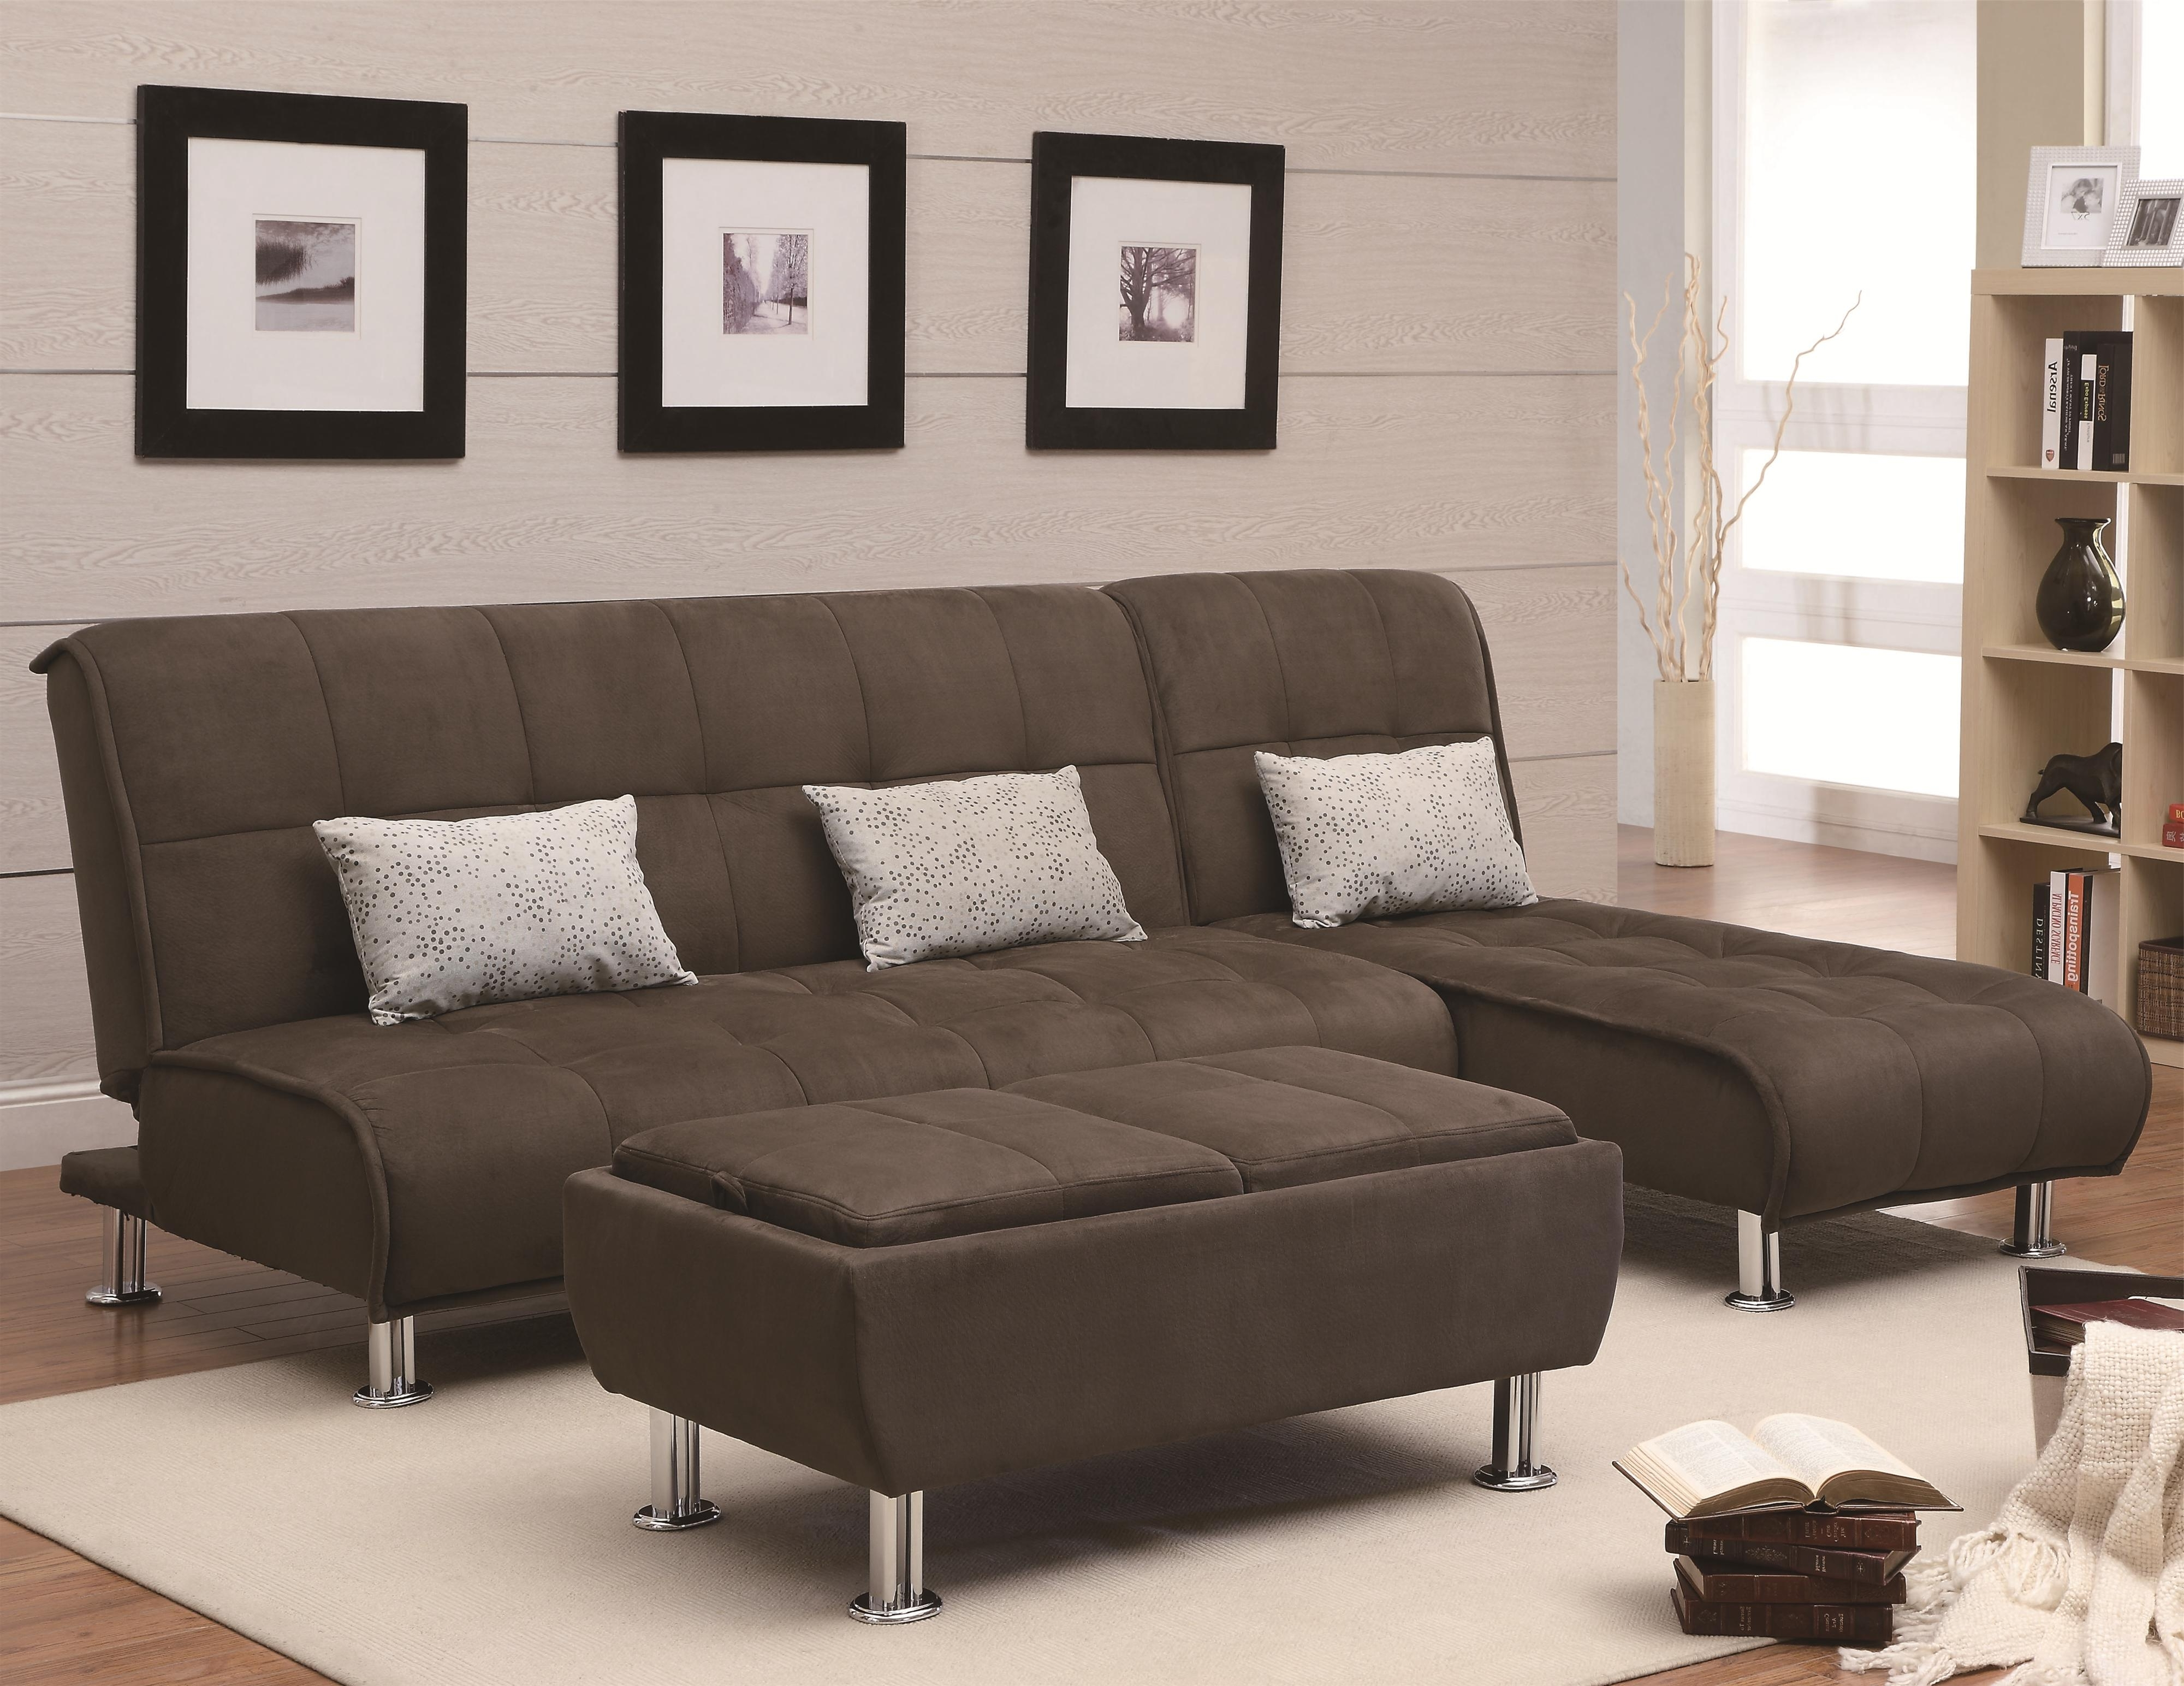 Most Recently Released Kijiji Edmonton Sectional Sofas Within Furniture : Sectional Sofa Kijiji Edmonton Sectional Couch Under (View 6 of 15)